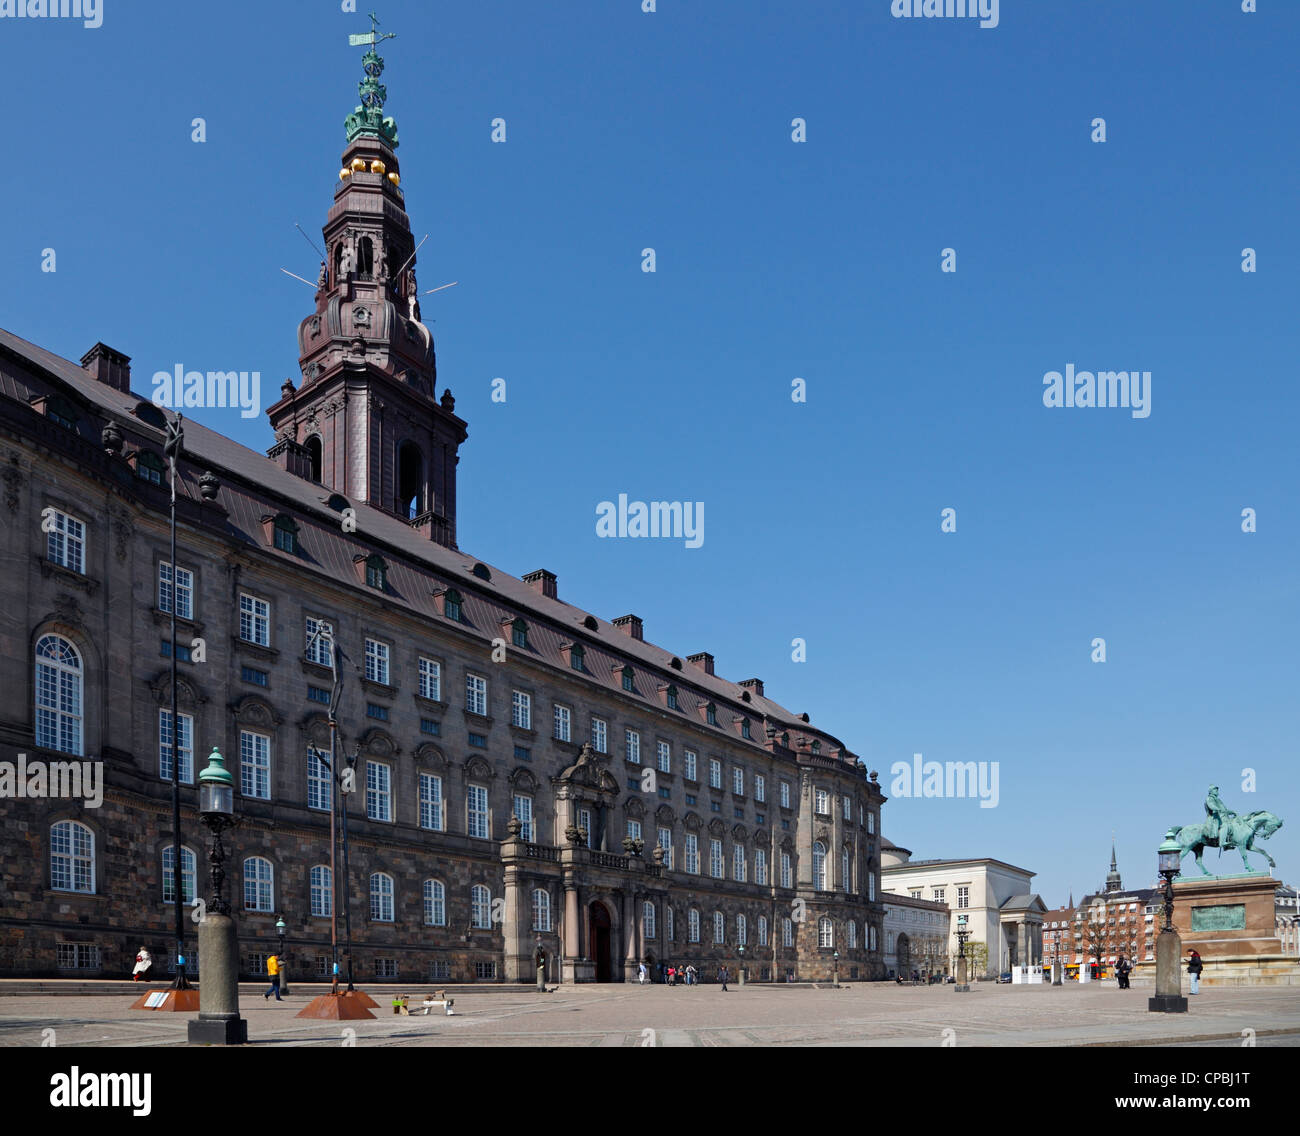 The palace and square of Christiansborg Palace with the equestrian statue. The Danish Parliament building in Copenhagen, - Stock Image